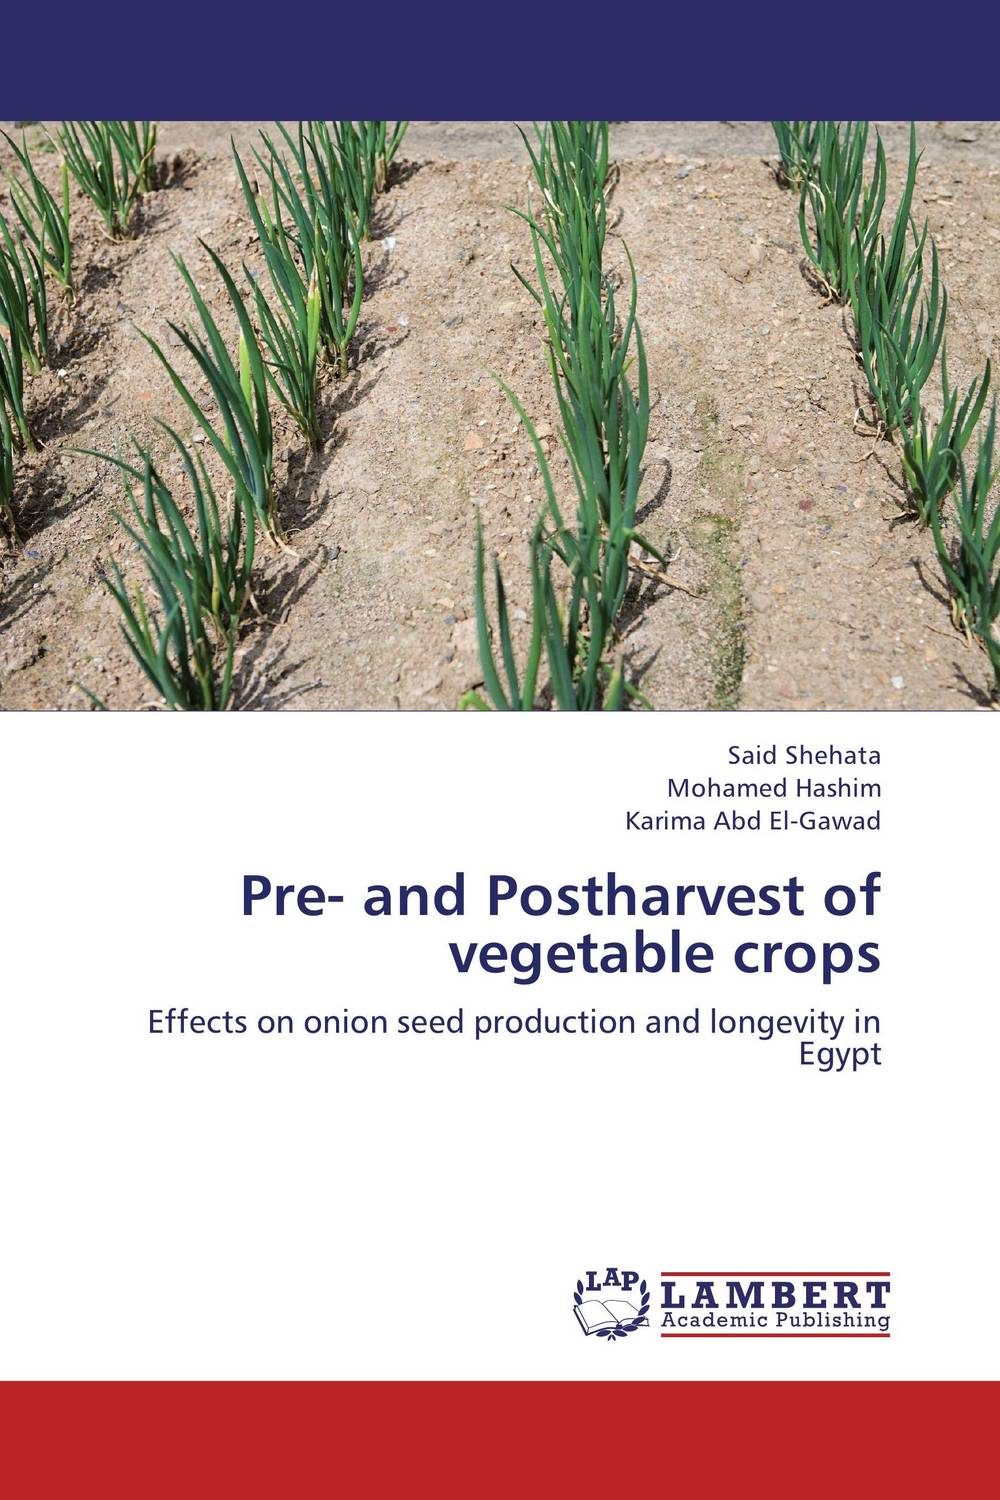 Pre- and Postharvest of vegetable crops seed dormancy and germination